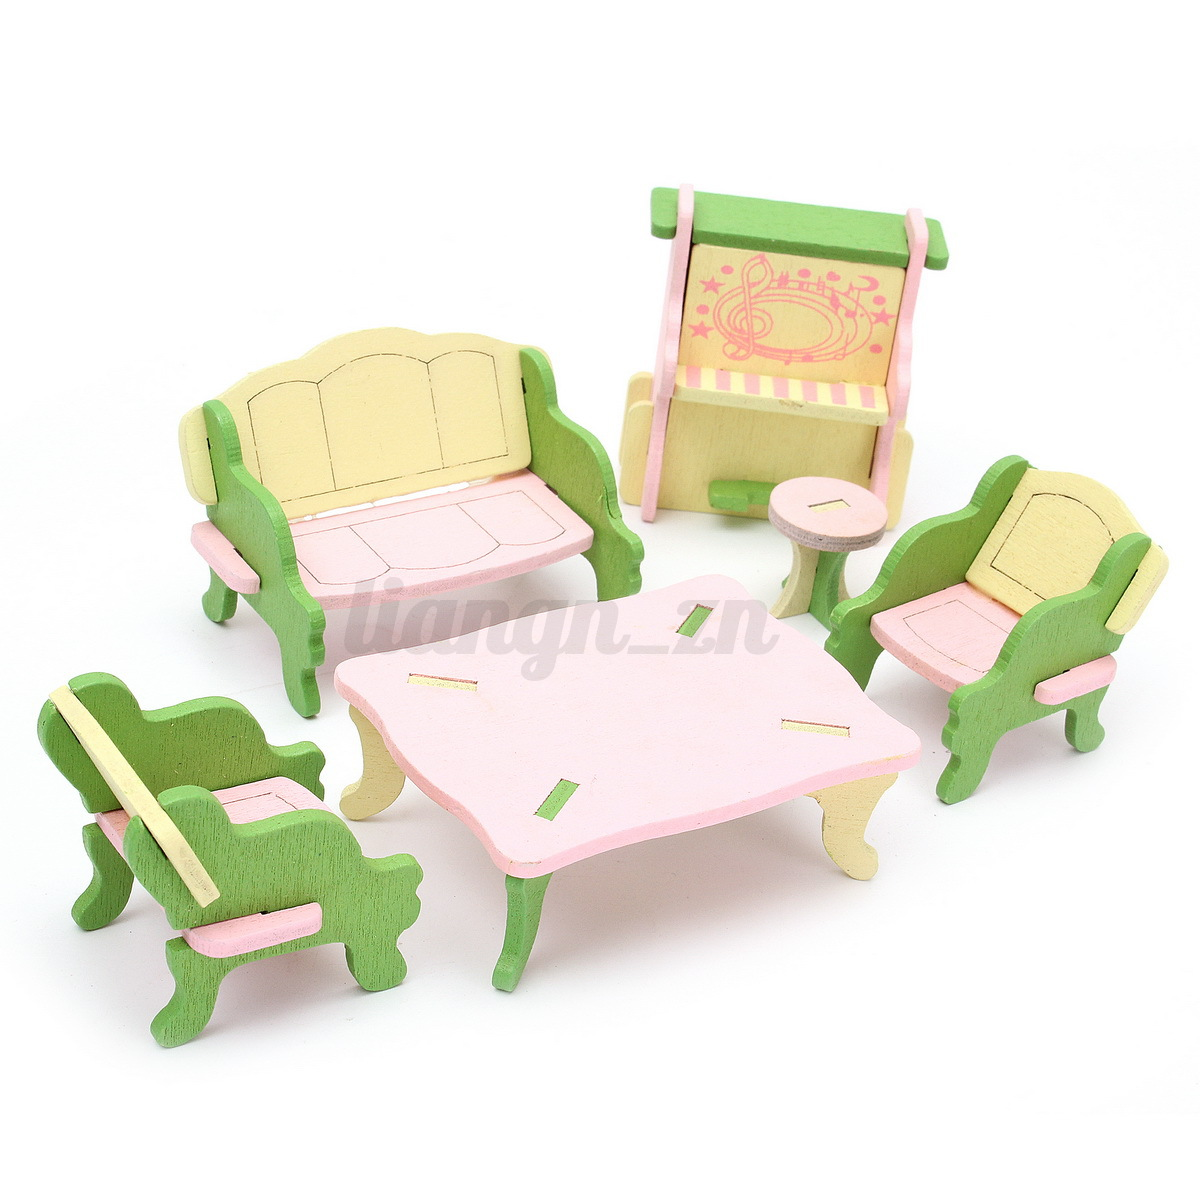 maison poup e meuble chaise chambre lit barbie en bois accessoires diy dollhouse ebay. Black Bedroom Furniture Sets. Home Design Ideas